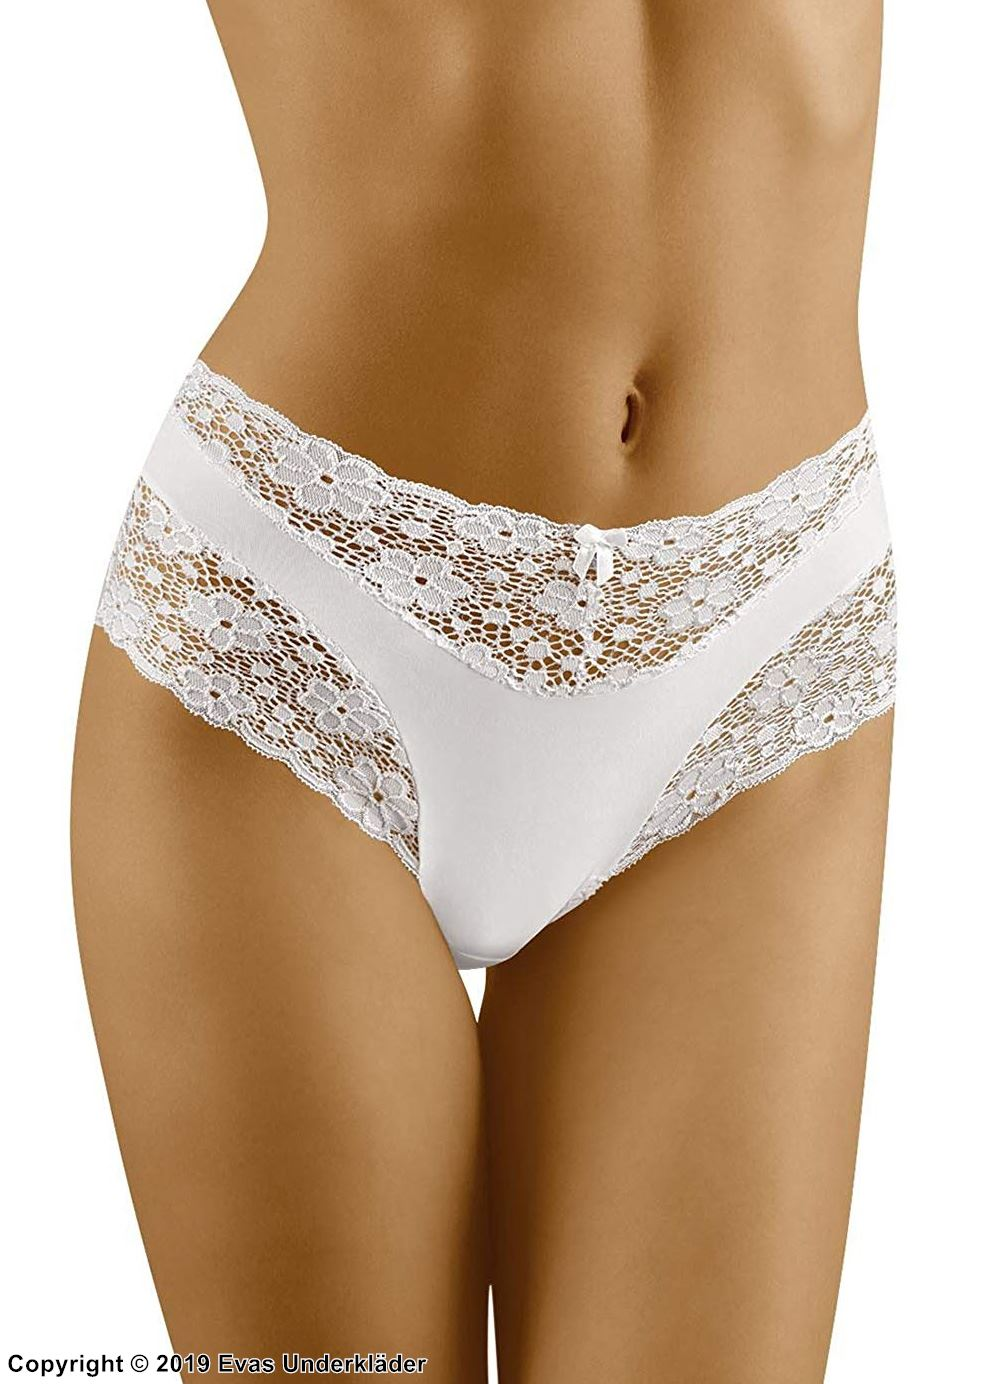 Panty with high waist with lace trim